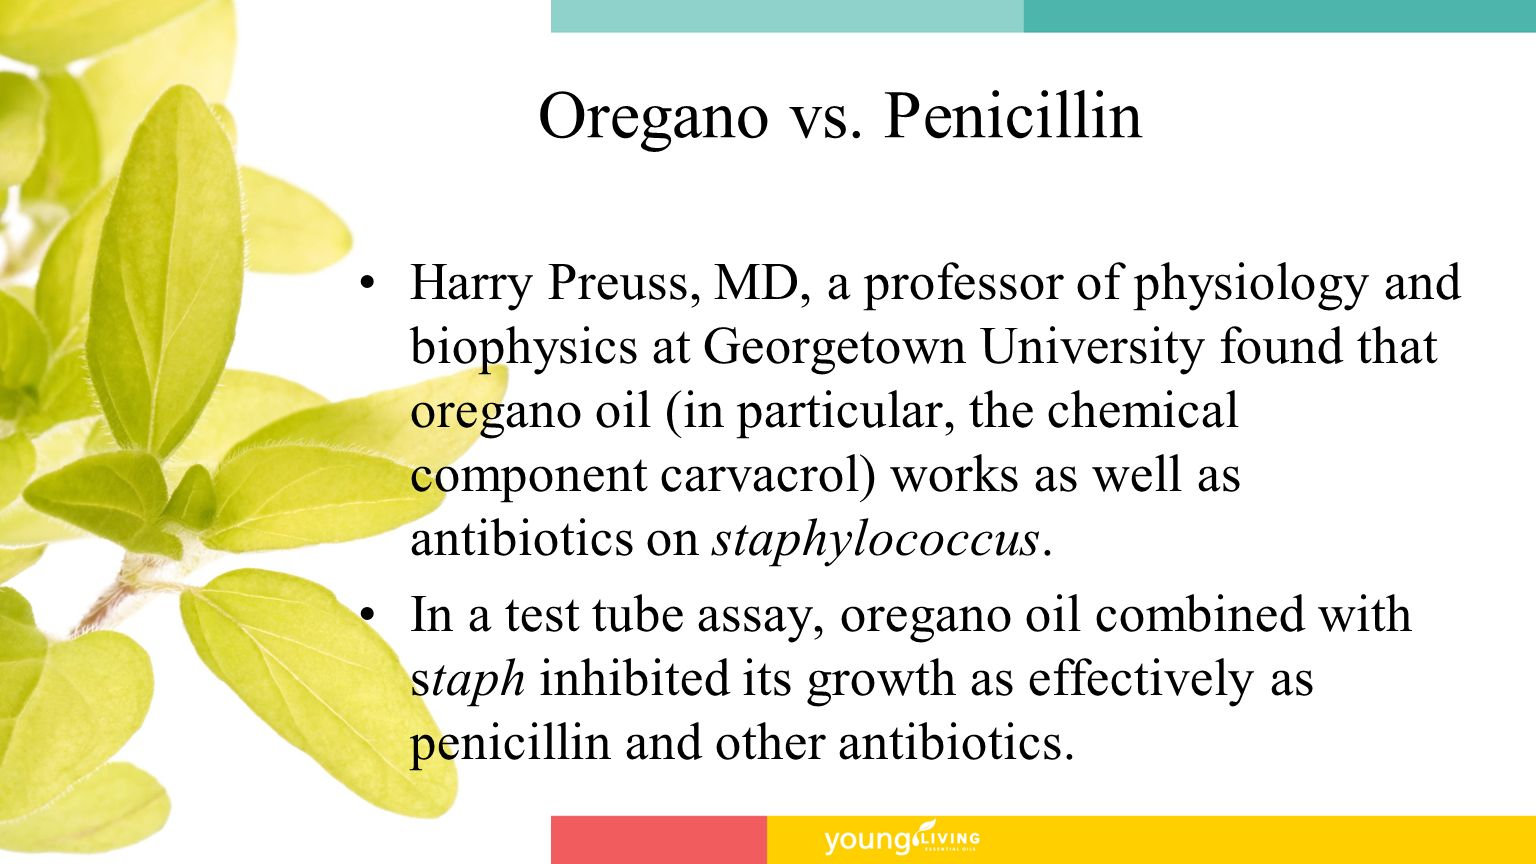 Oregano vs. Penicillin